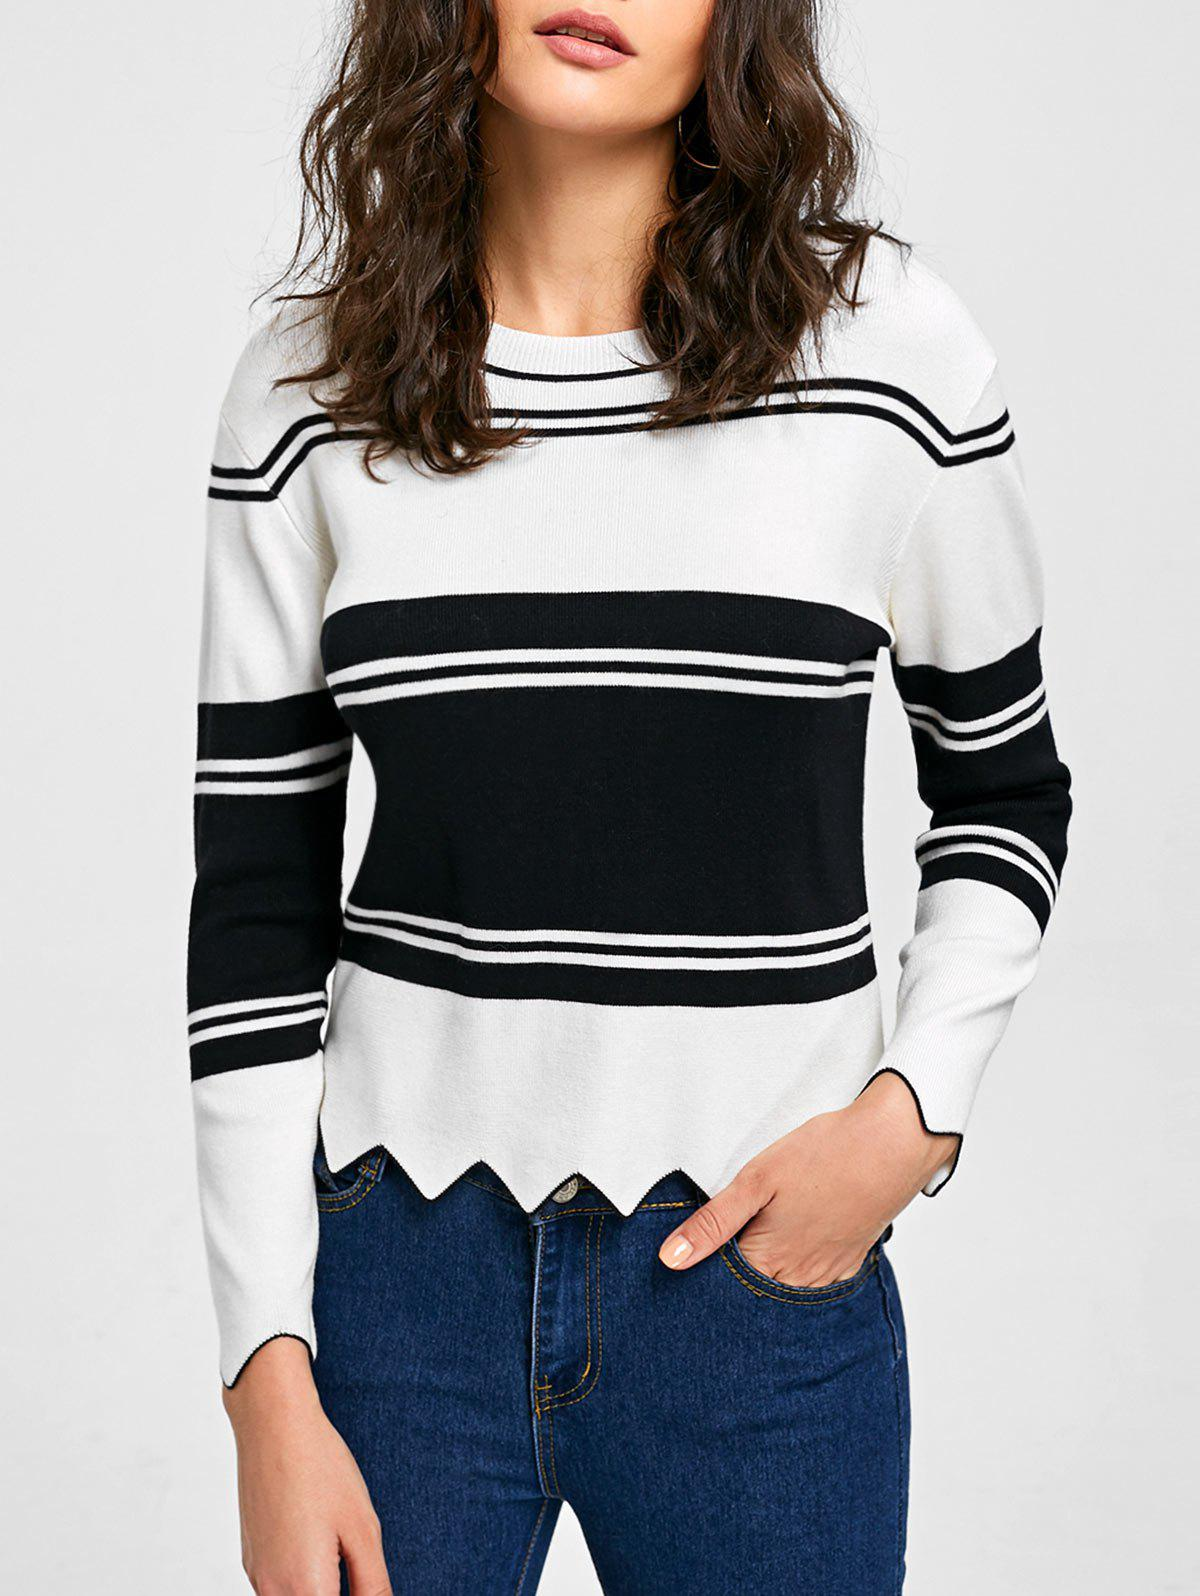 High Low Drop Shoulder Trim Sweater - WHITE/BLACK L